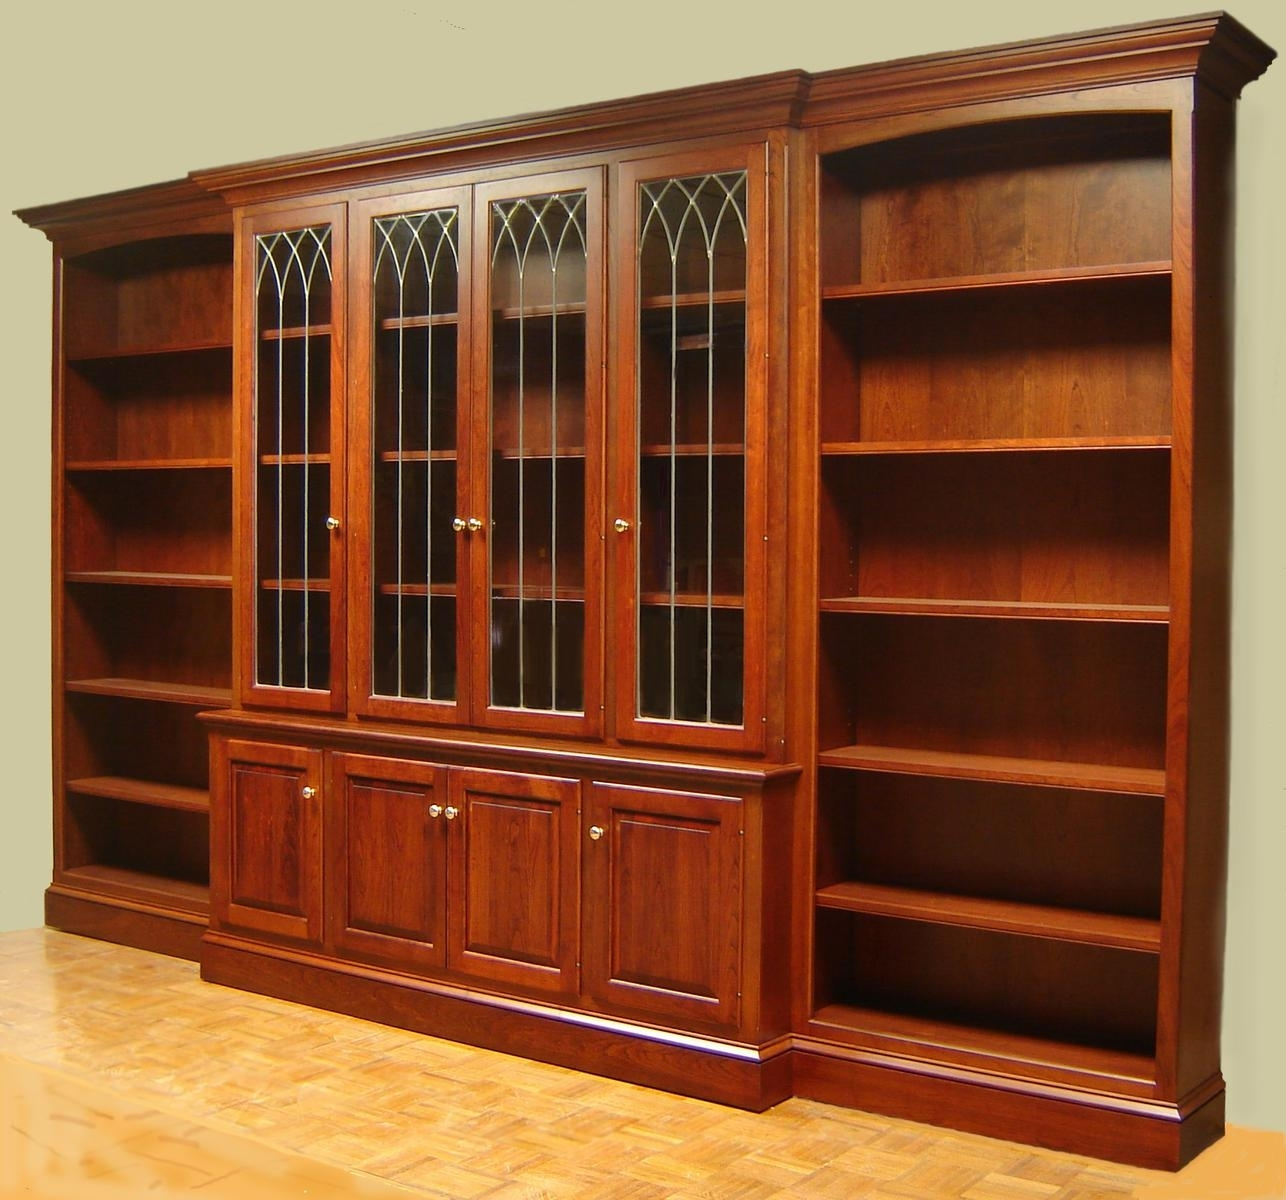 Classic Wood Bookcase With Doors Solid Hardwood Construction Intended For Classic Bookcases (#5 of 15)